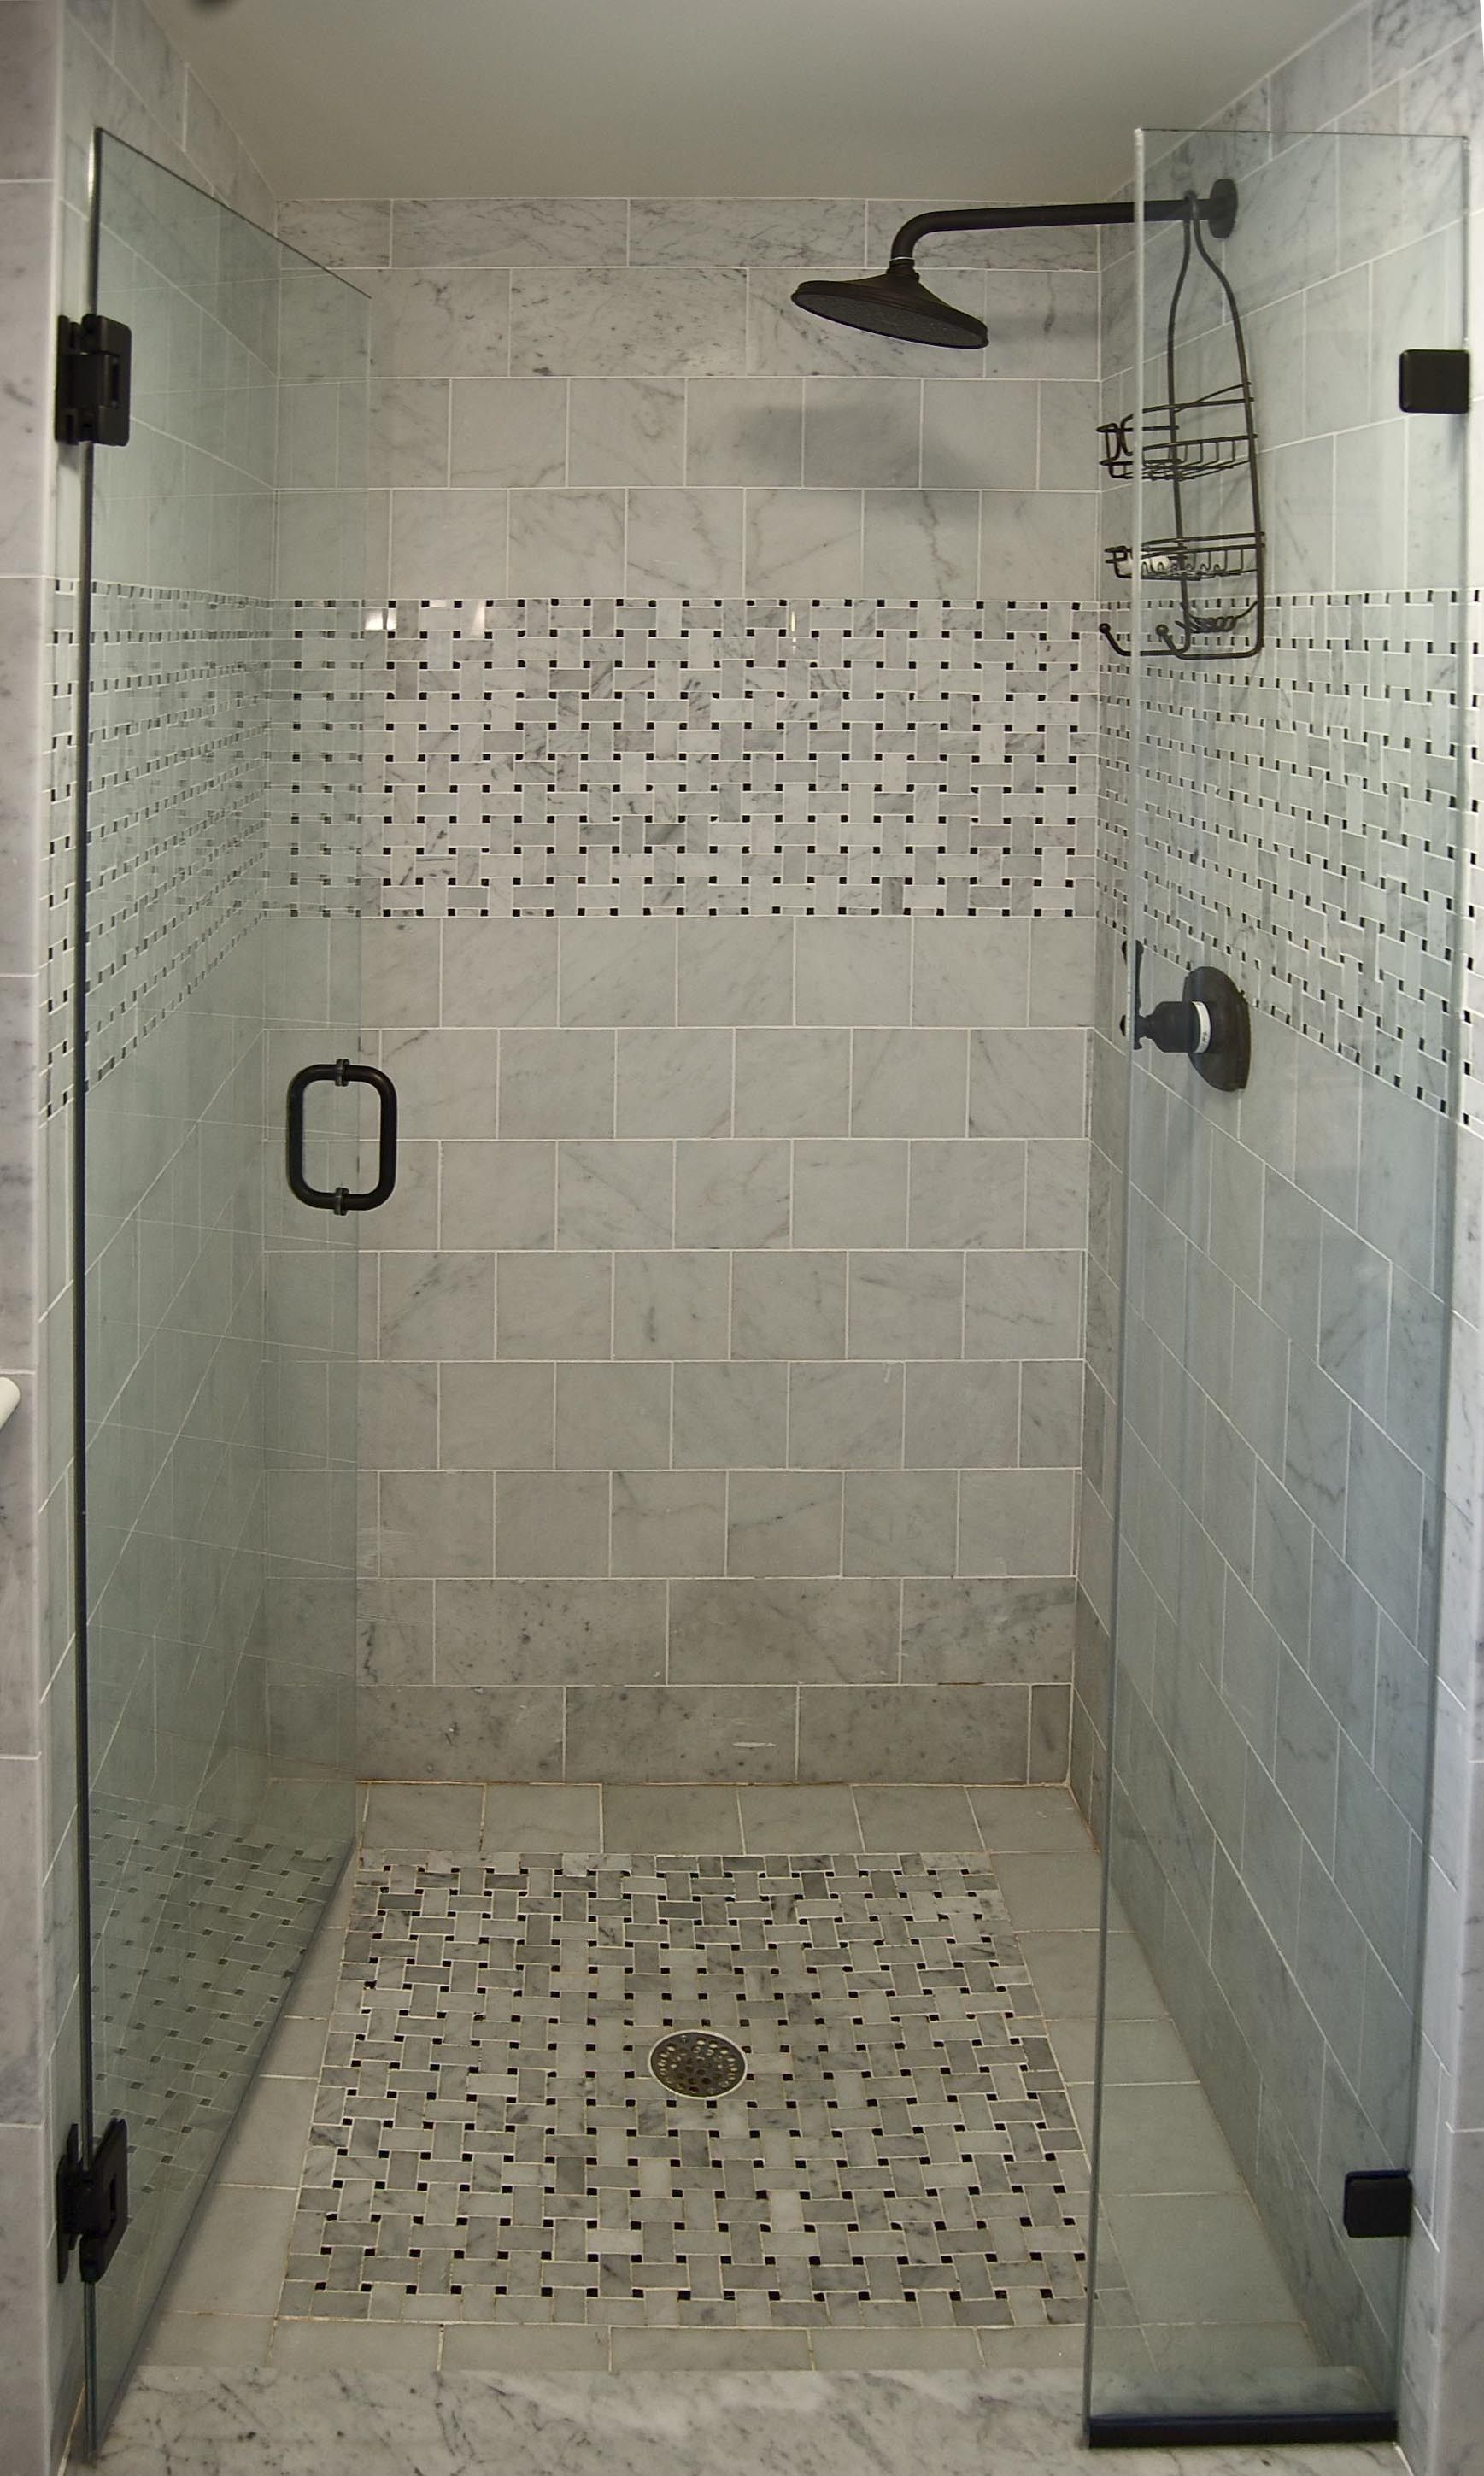 30 Shower Tile Ideas On A Budget Small Bathroom With Design